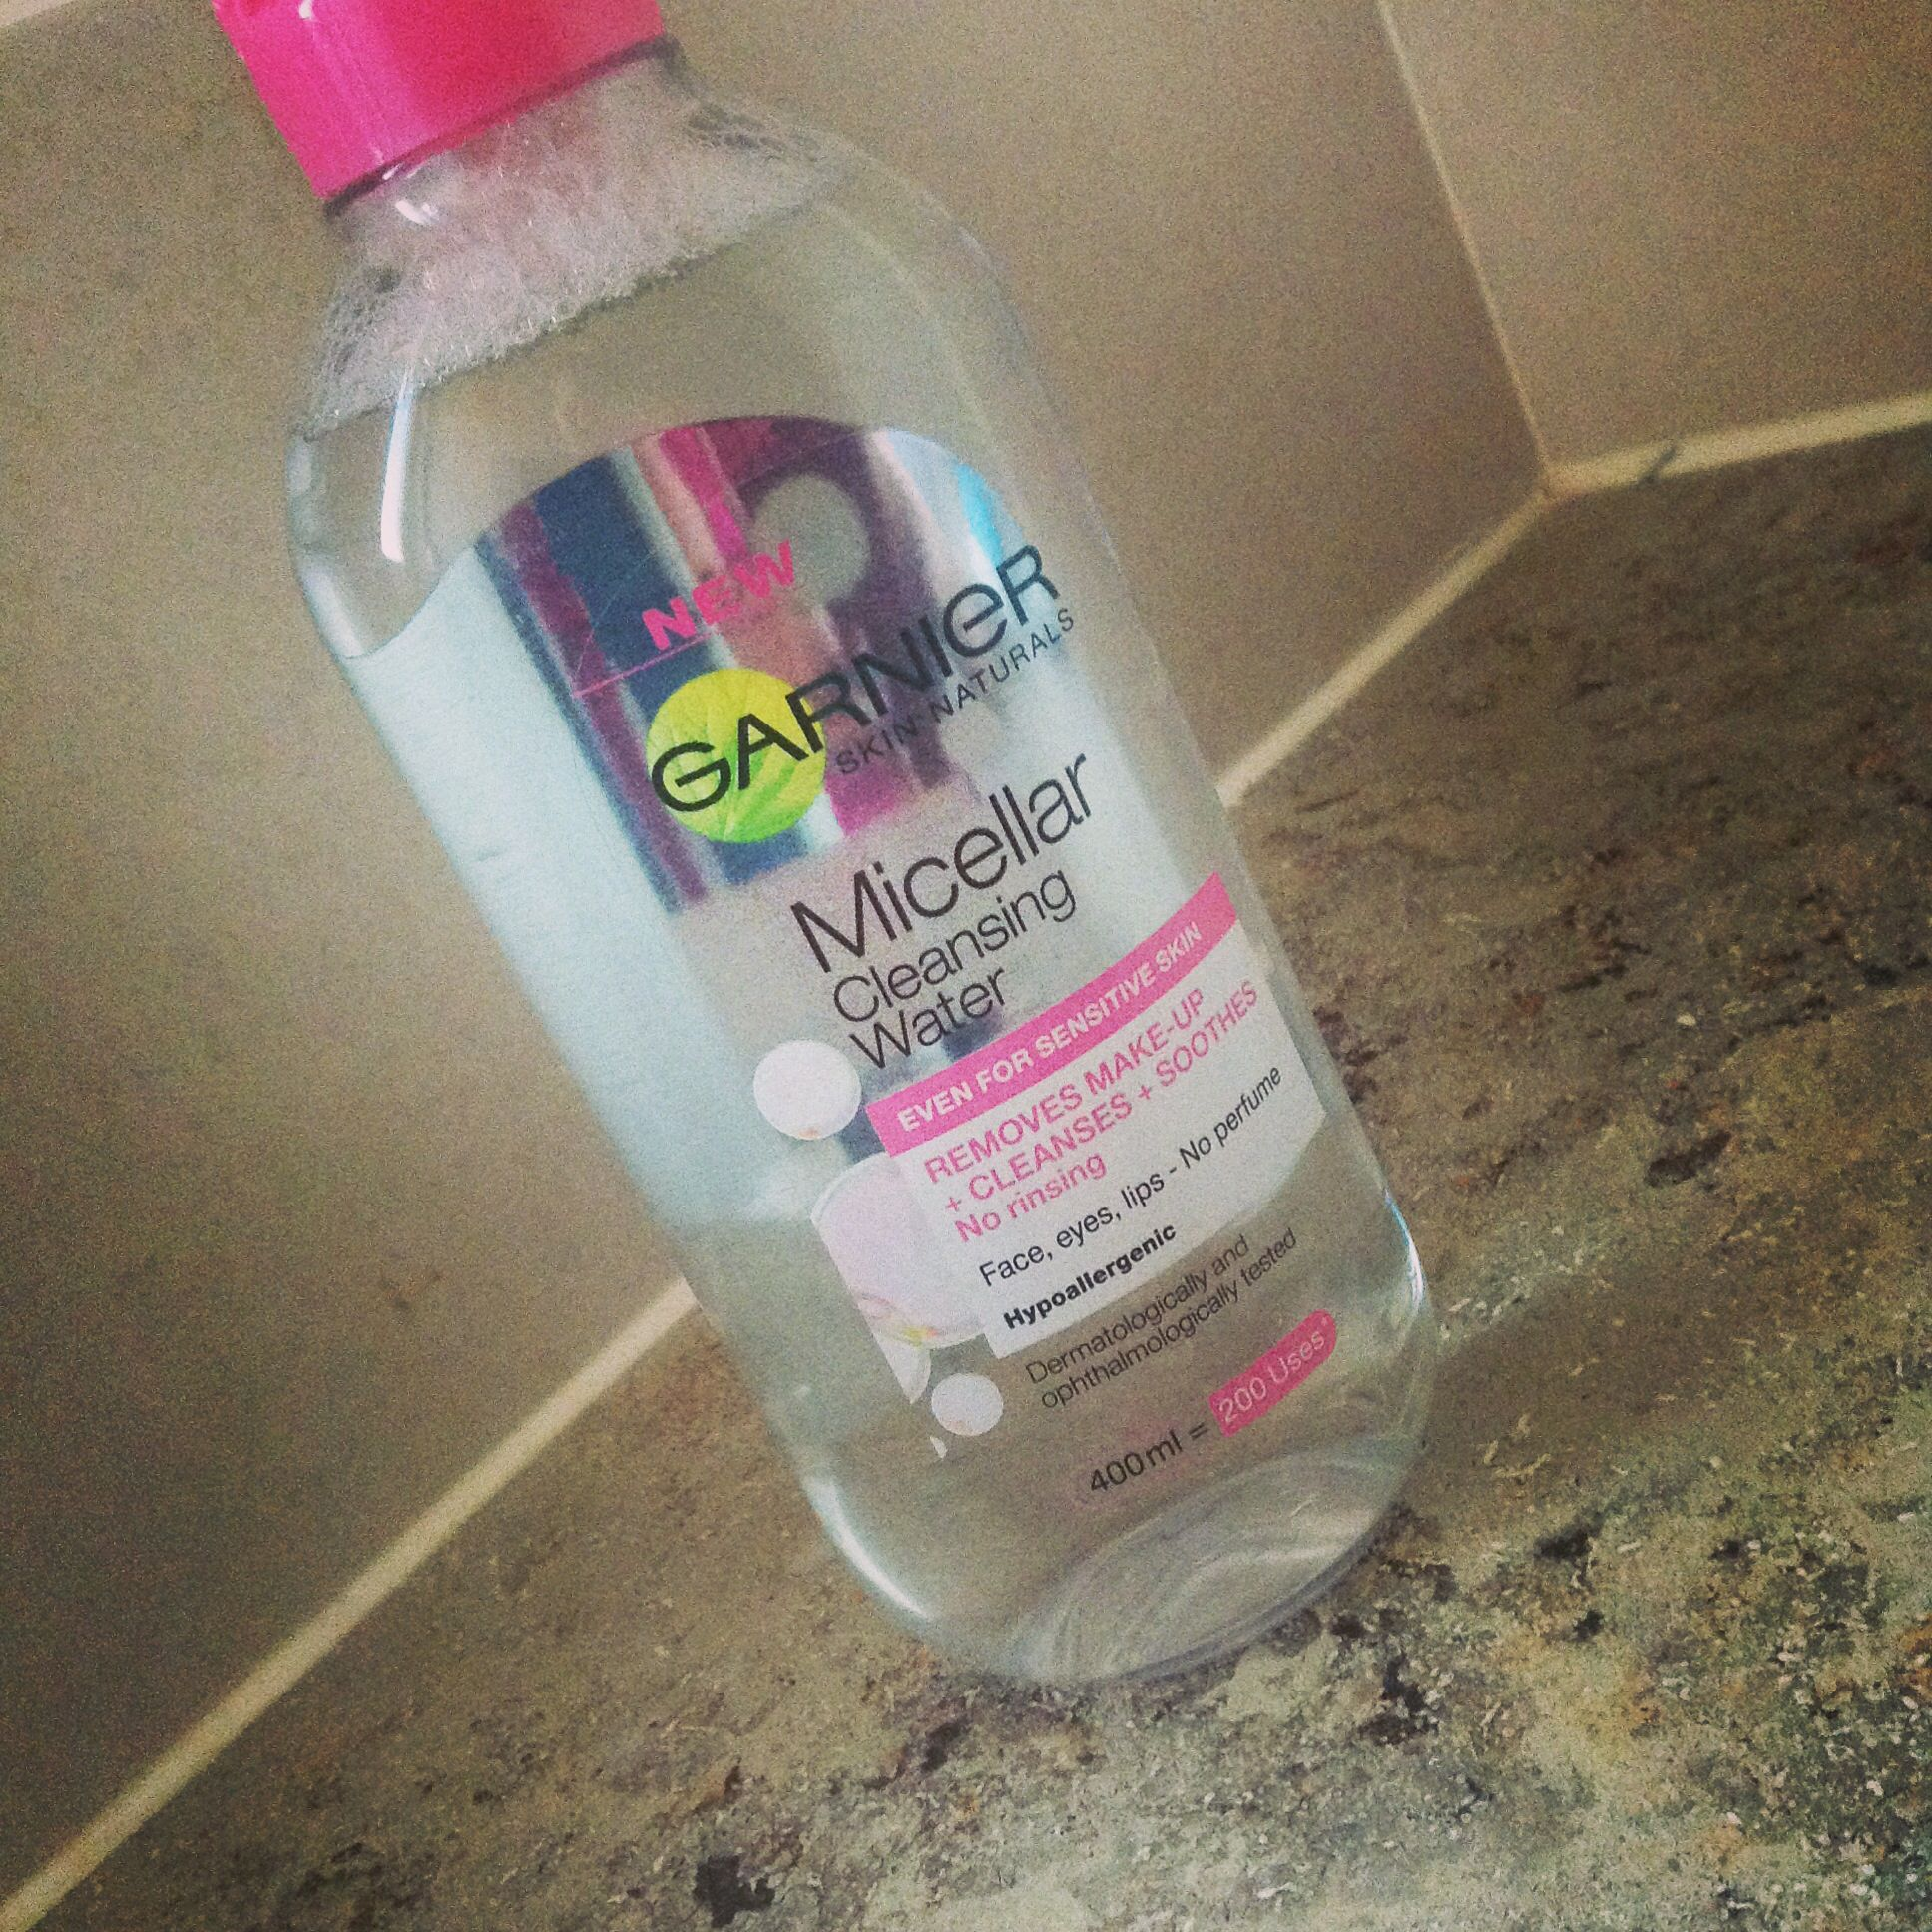 The new Garnier Micellar Cleansing Water Could this be